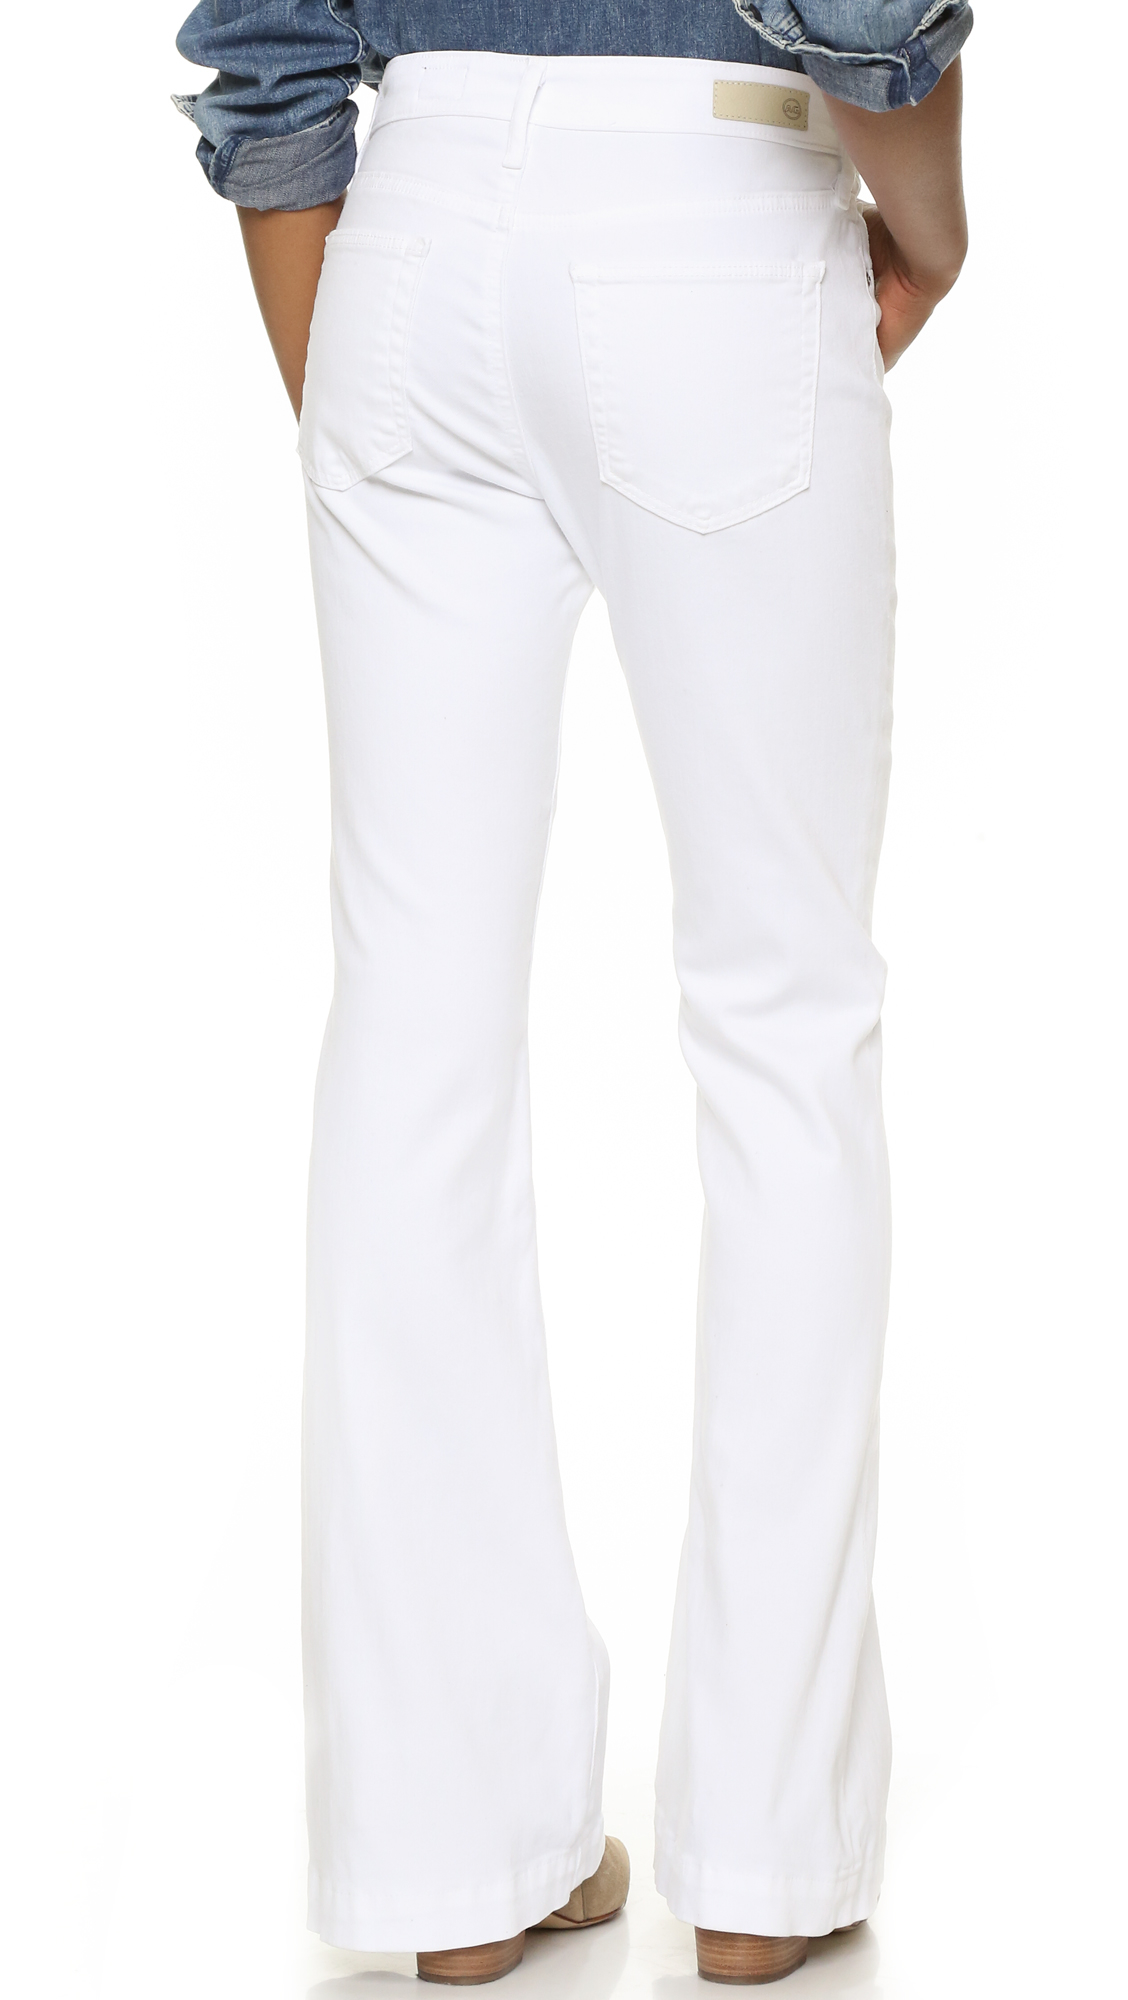 Ag jeans The Petite Janis Flare Jeans in White   Lyst